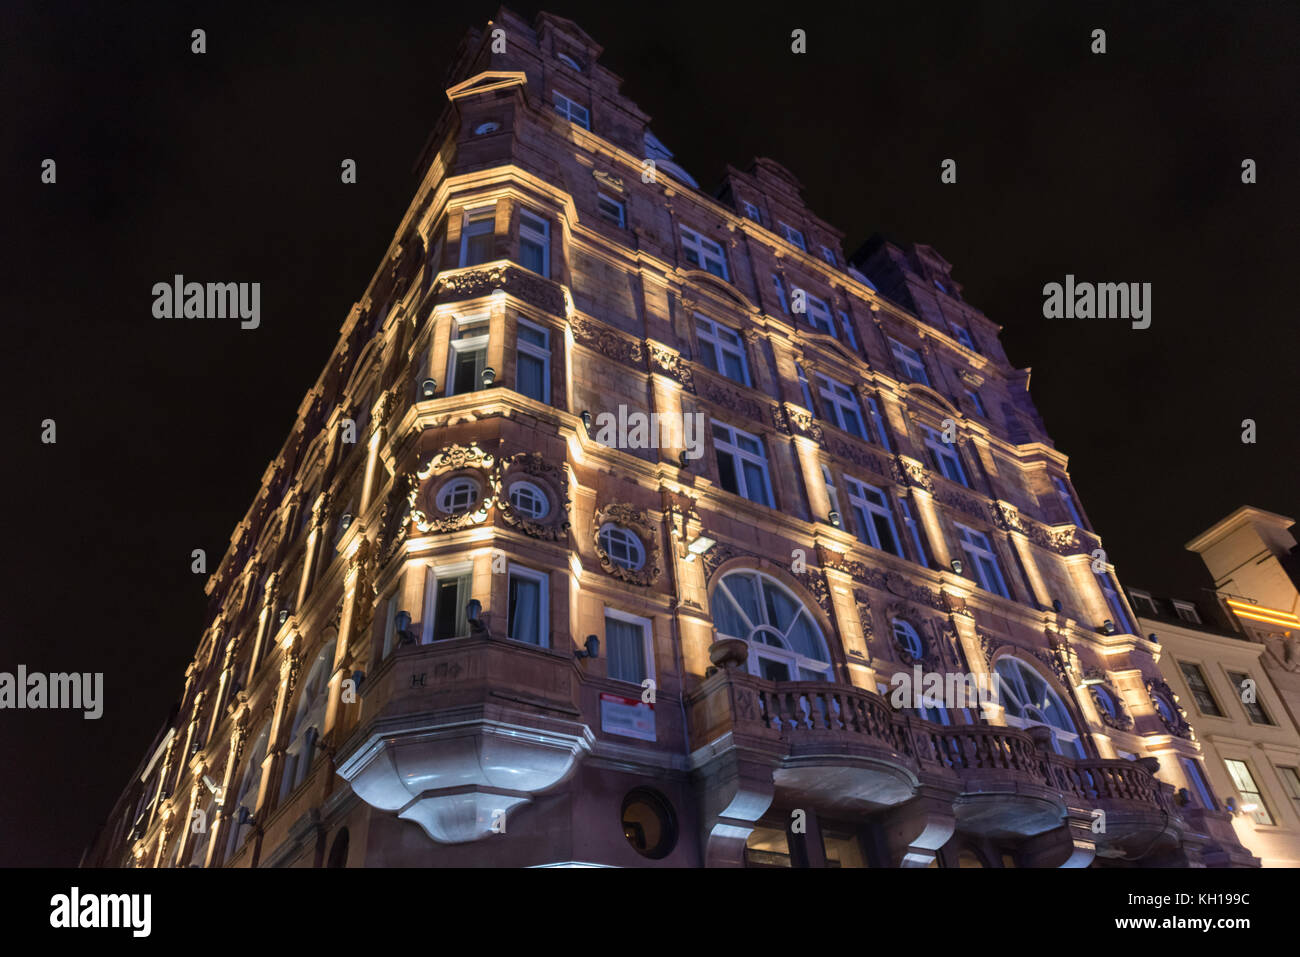 Beautiful buildings at Leicester Square in London at night - Stock Image